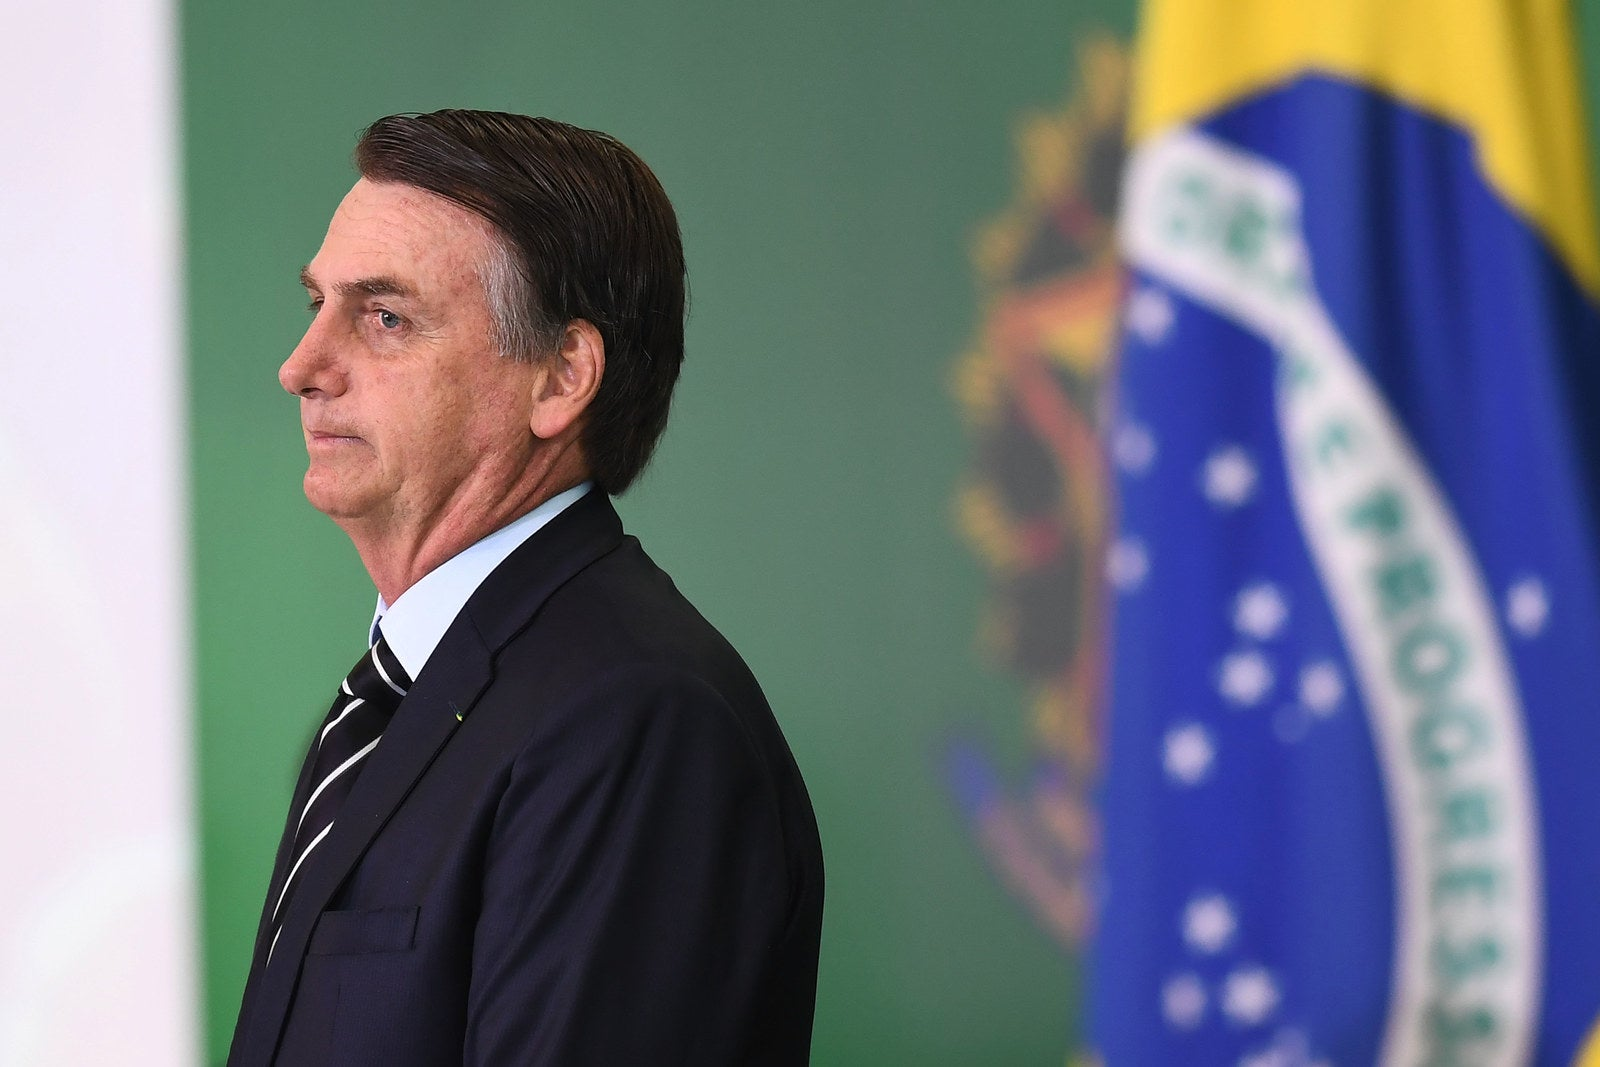 Labor Groups In The US And Brazil Are Teaming Up Against Brazil's New Right-Wing President